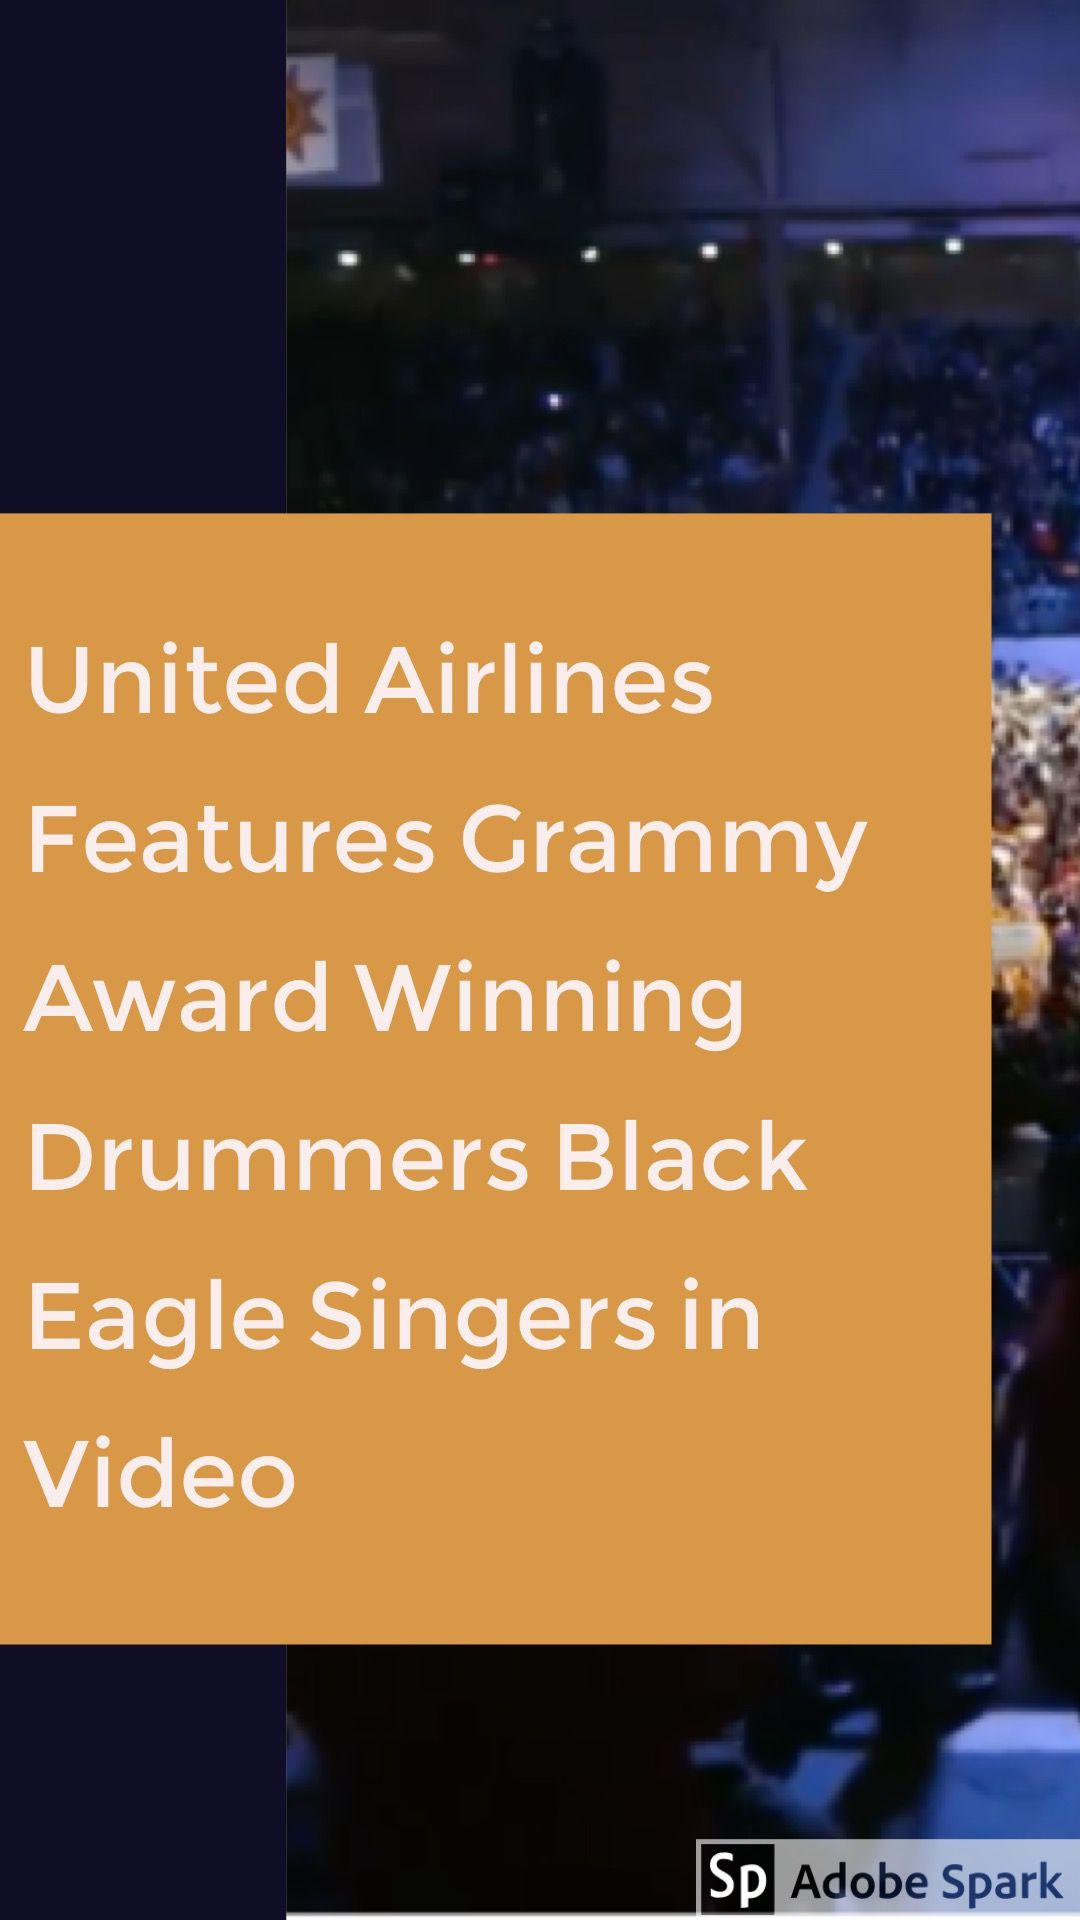 United airlines features grammy award winning drummers black eagle